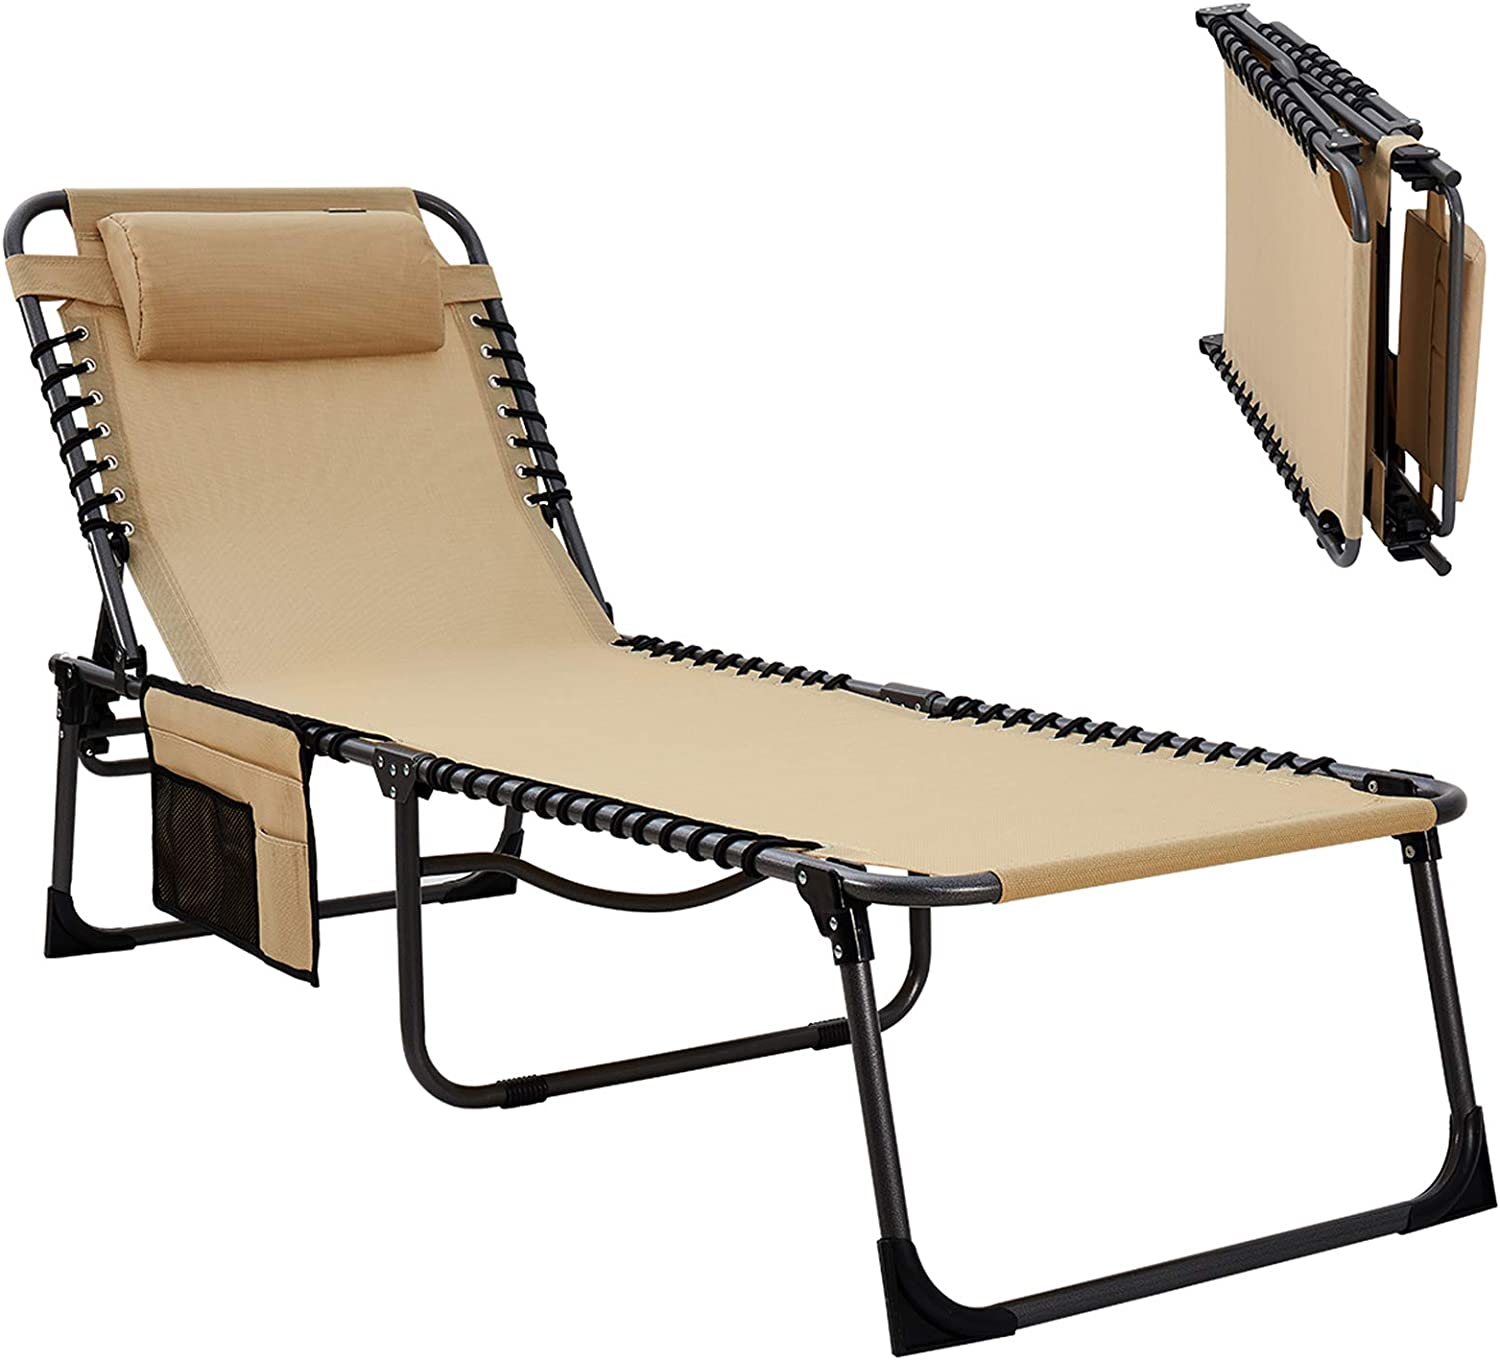 KingCamp Adjustable 4-Position Patio Chaise Lounge Chair Heavy Duty Outdoor Camping Recliner Folding Cot with Pillow Pocket for Garden Yard Lawn Sunbathing Beach Pool, Supports 265 lbs